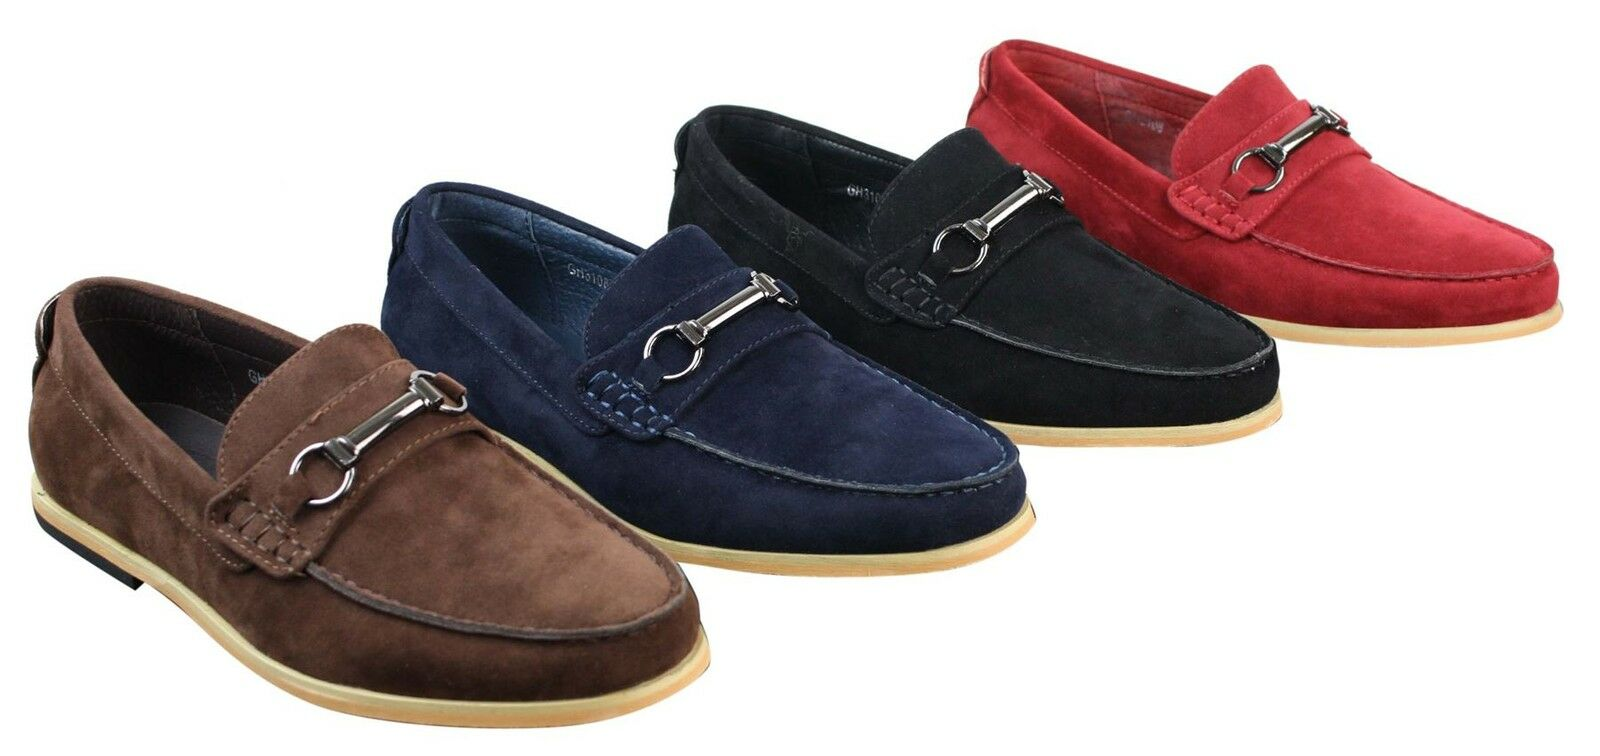 Mens Slip On Buckle Horsebit Driving Shoes Loafers Retro Smart Casual Suede